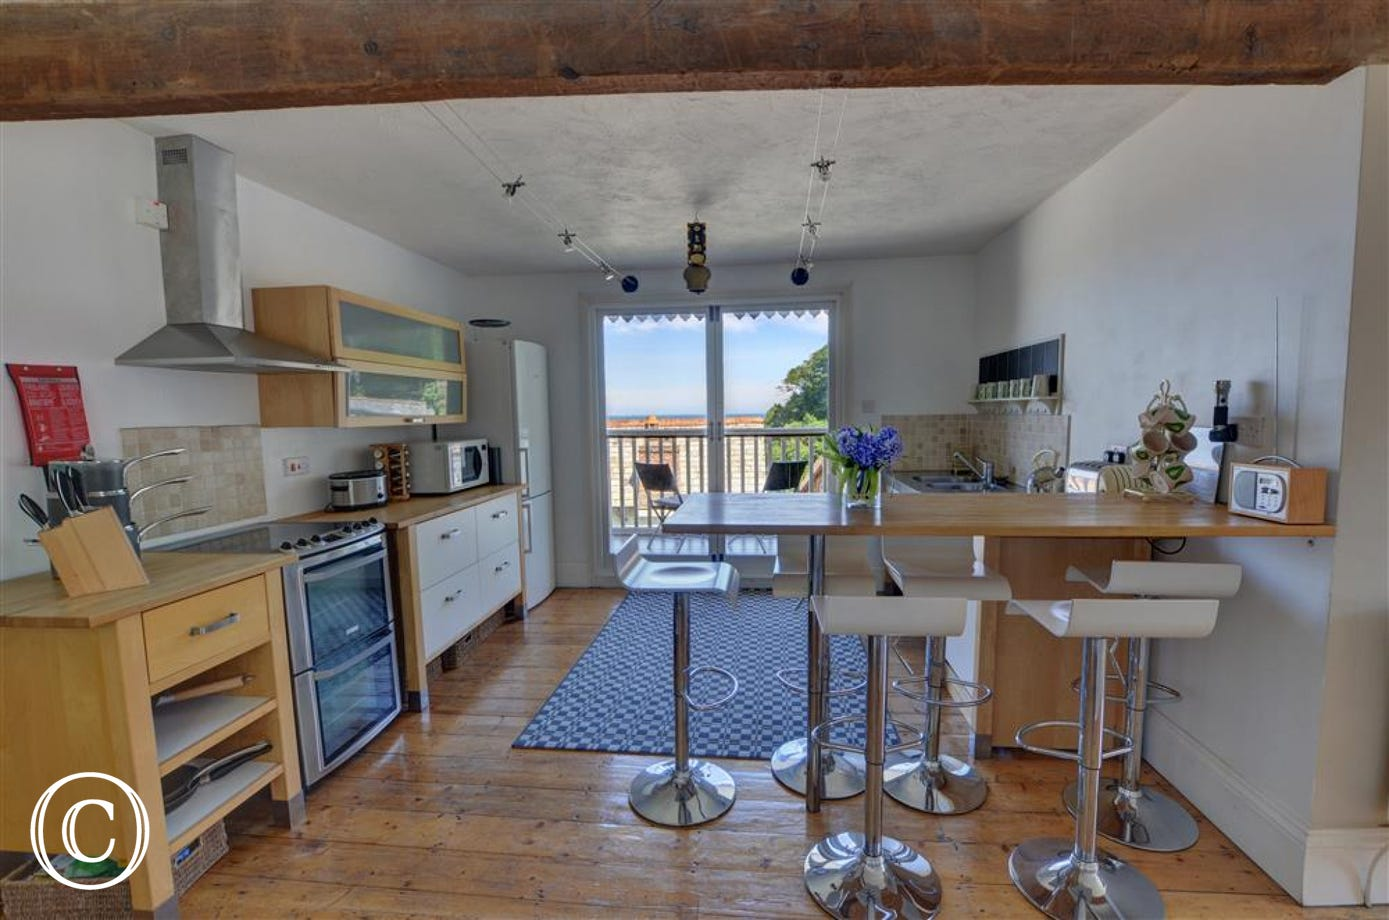 The kitchen benefits from French doors which lead to a larger balcony ideal for BBQs or leisurely breakfasts al fresco.